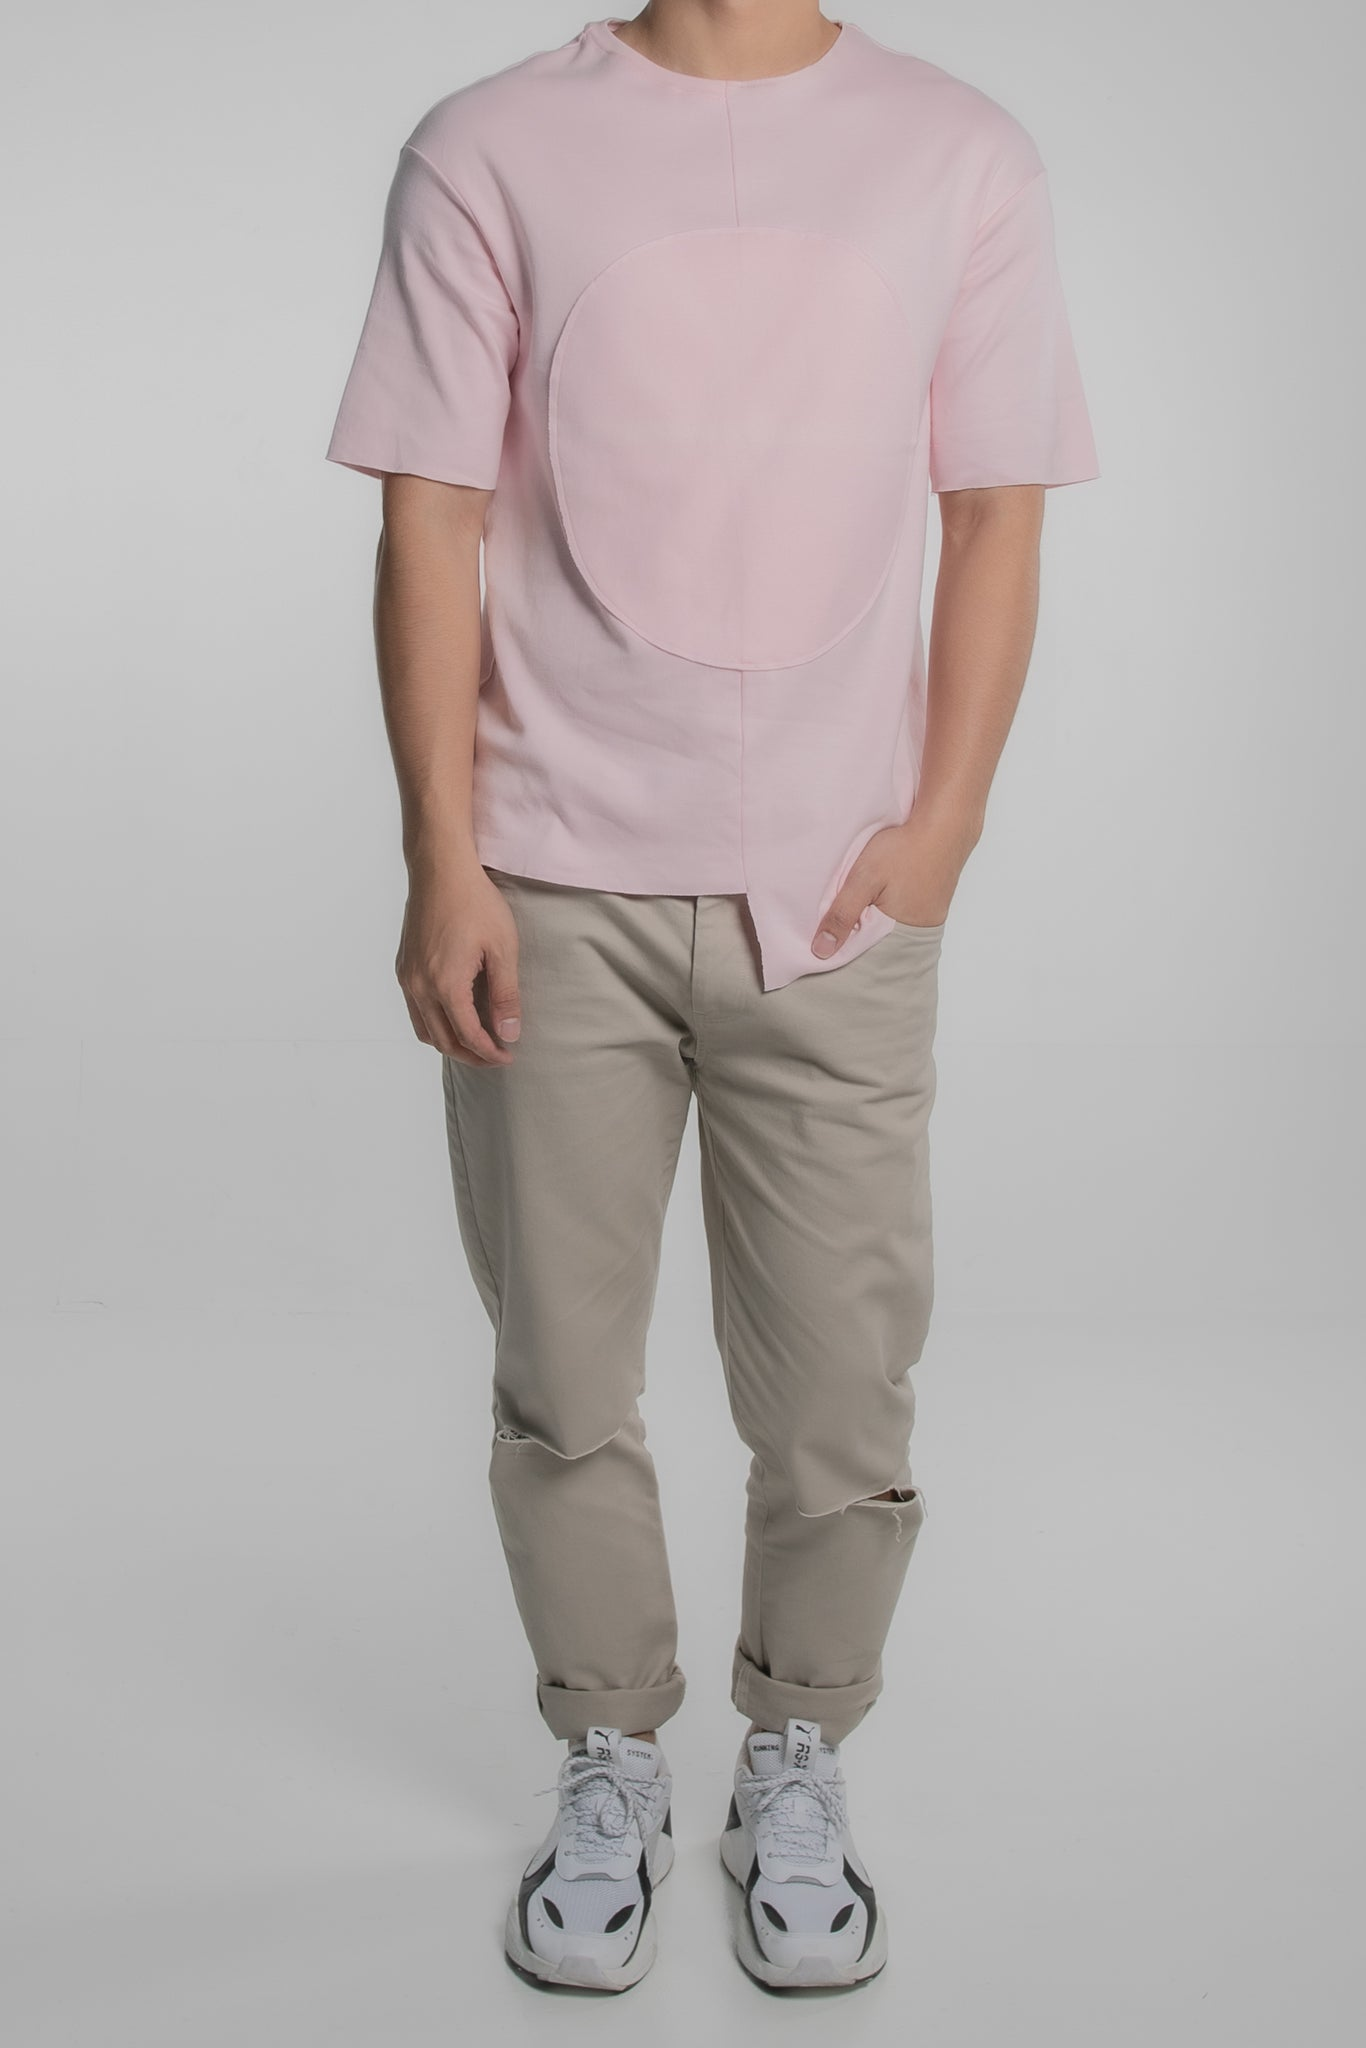 Pink Dot Tee (Short Sleeve)